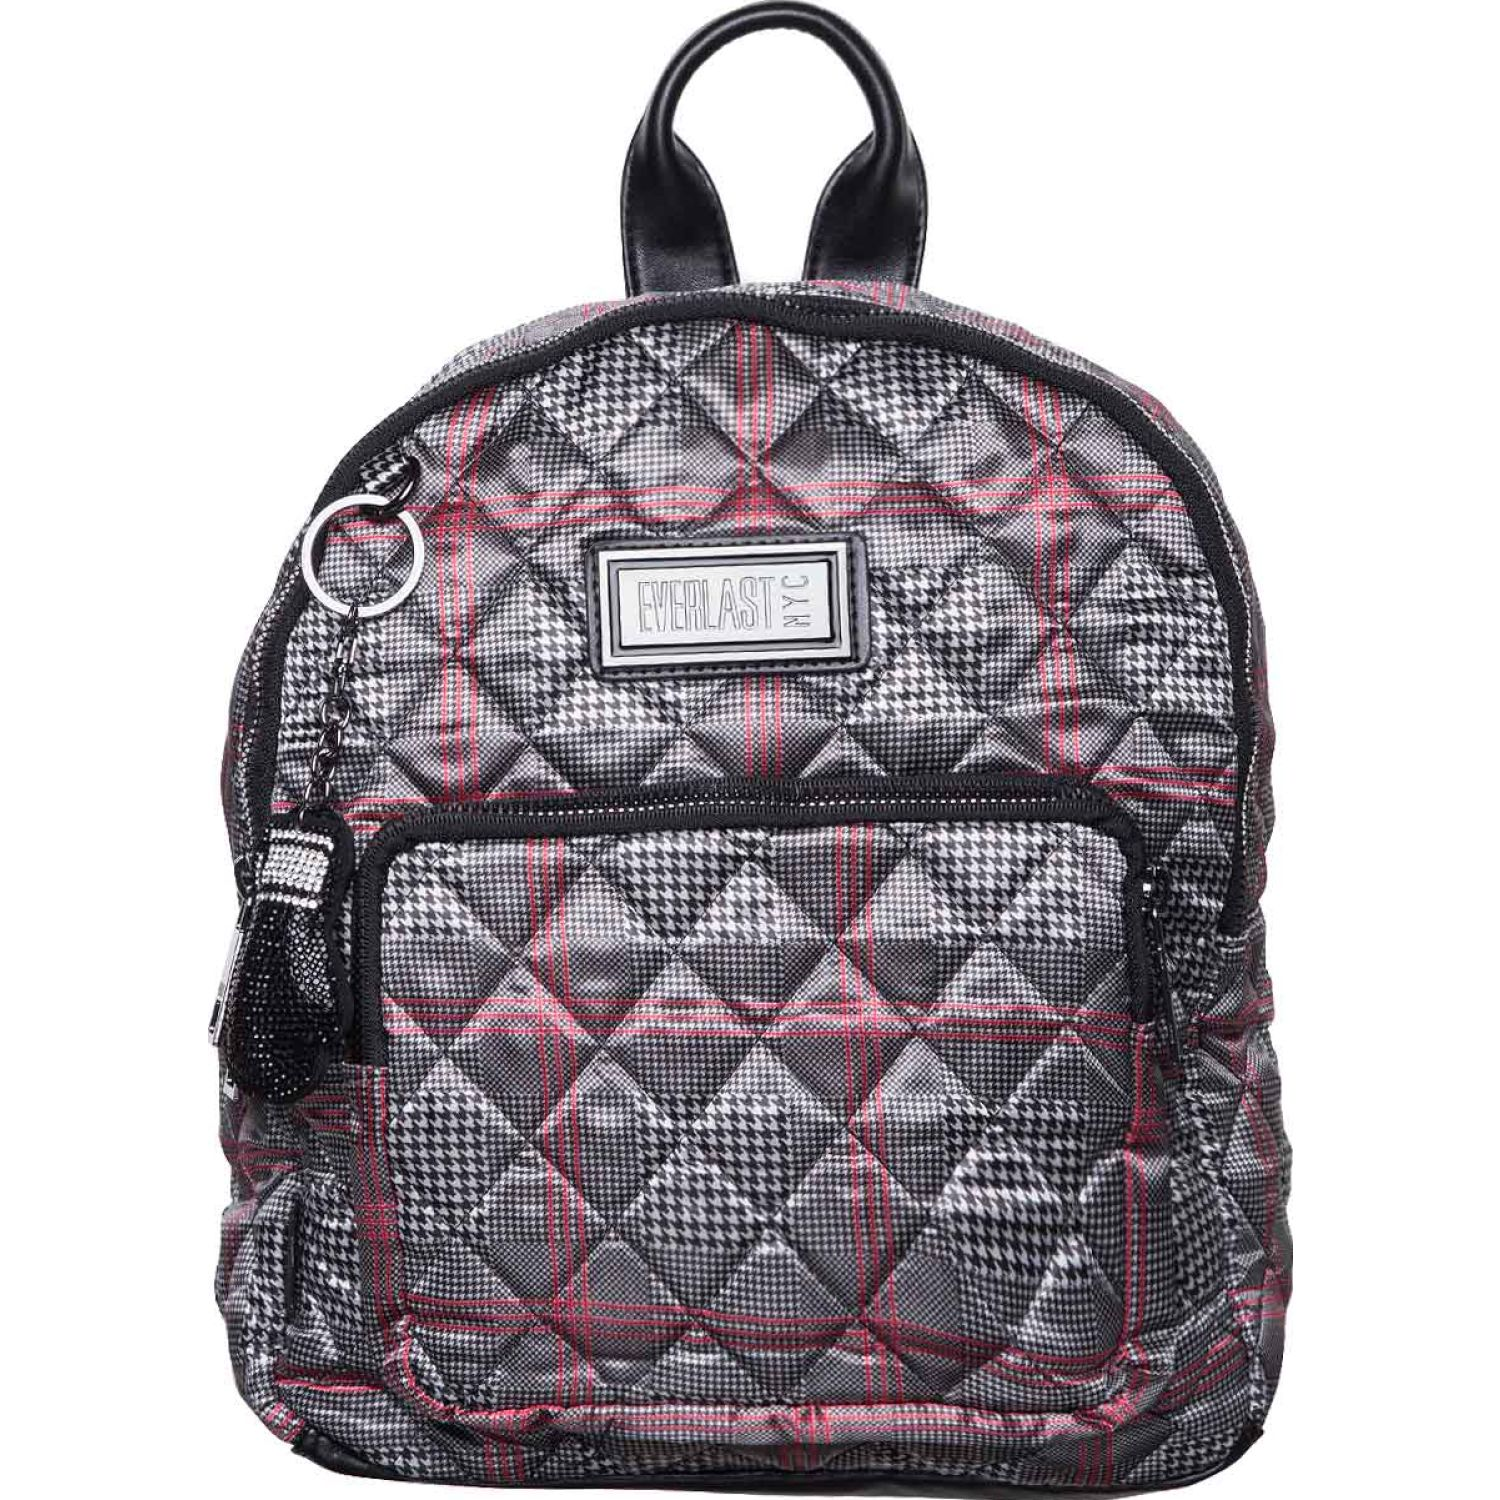 Everlast mochila mini quilted pdg oxford Plomo / rojo Mochilas Fashion